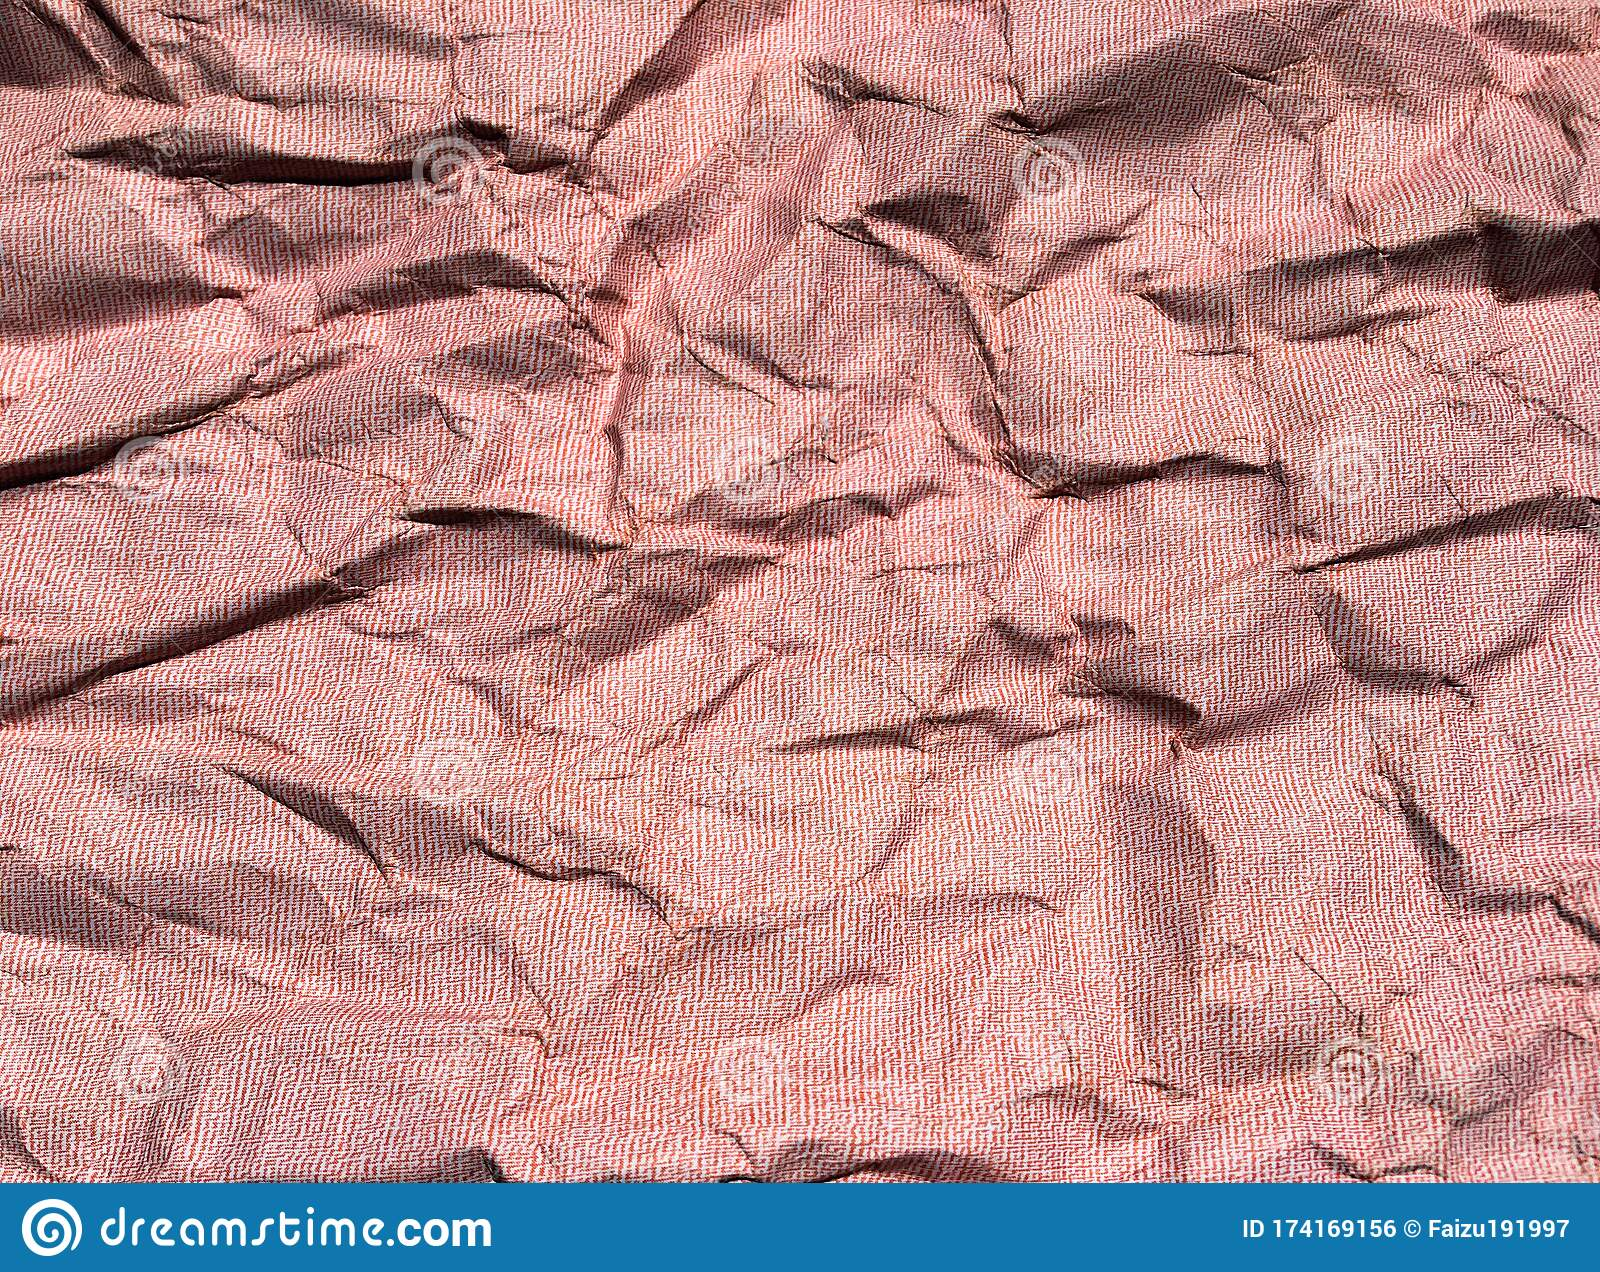 Beautiful Pattern Of Red Crumpled Paper Texture Background Stock Photo Image Of Design Background 174169156